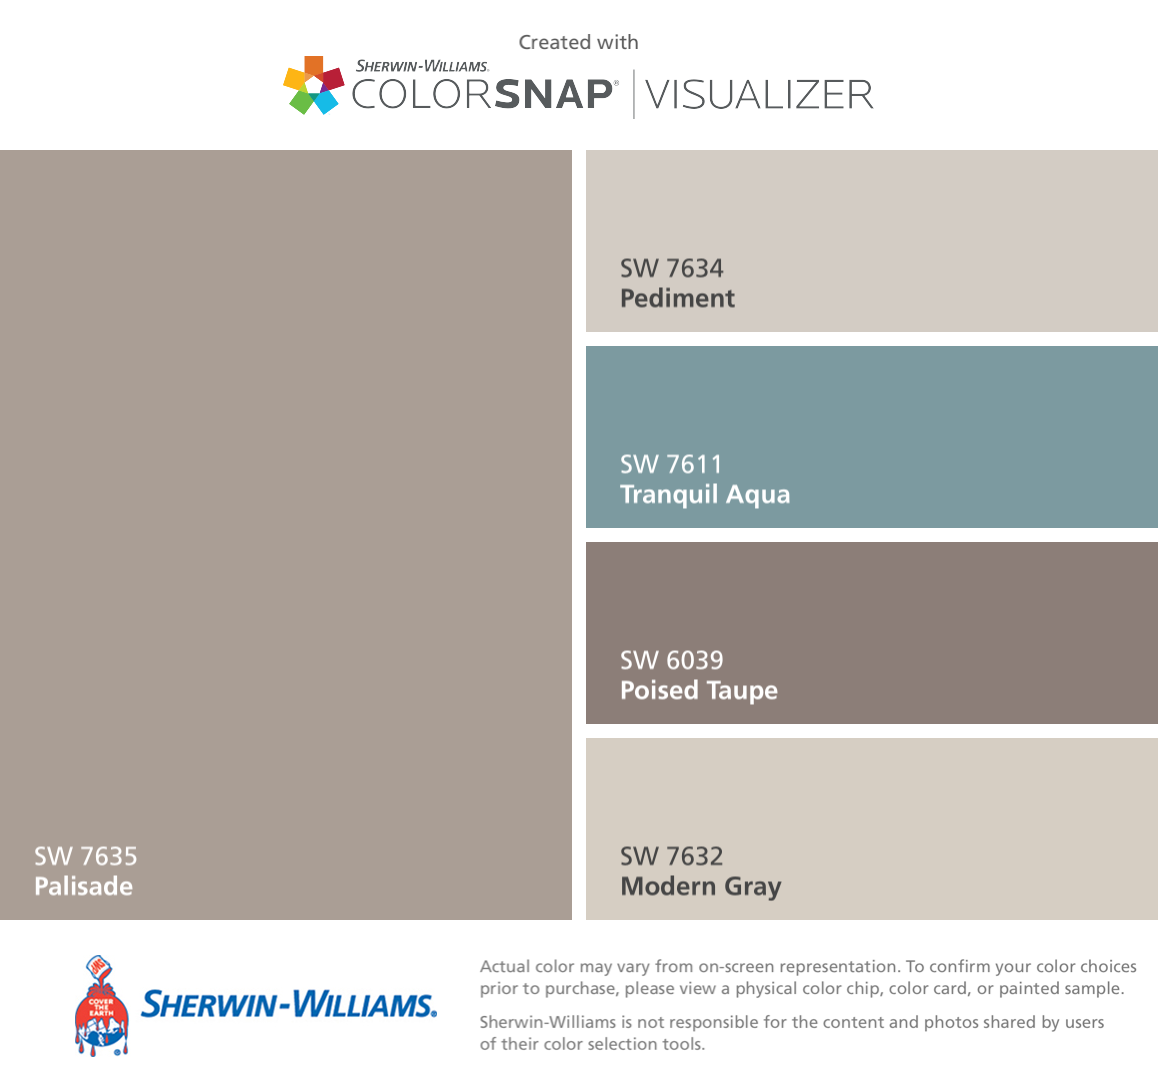 I Found These Colors With Colorsnap Visualizer For Iphone By Sherwin Williams Palisade Sw 7635 Pediment 7634 Tranquil Aqua 7611